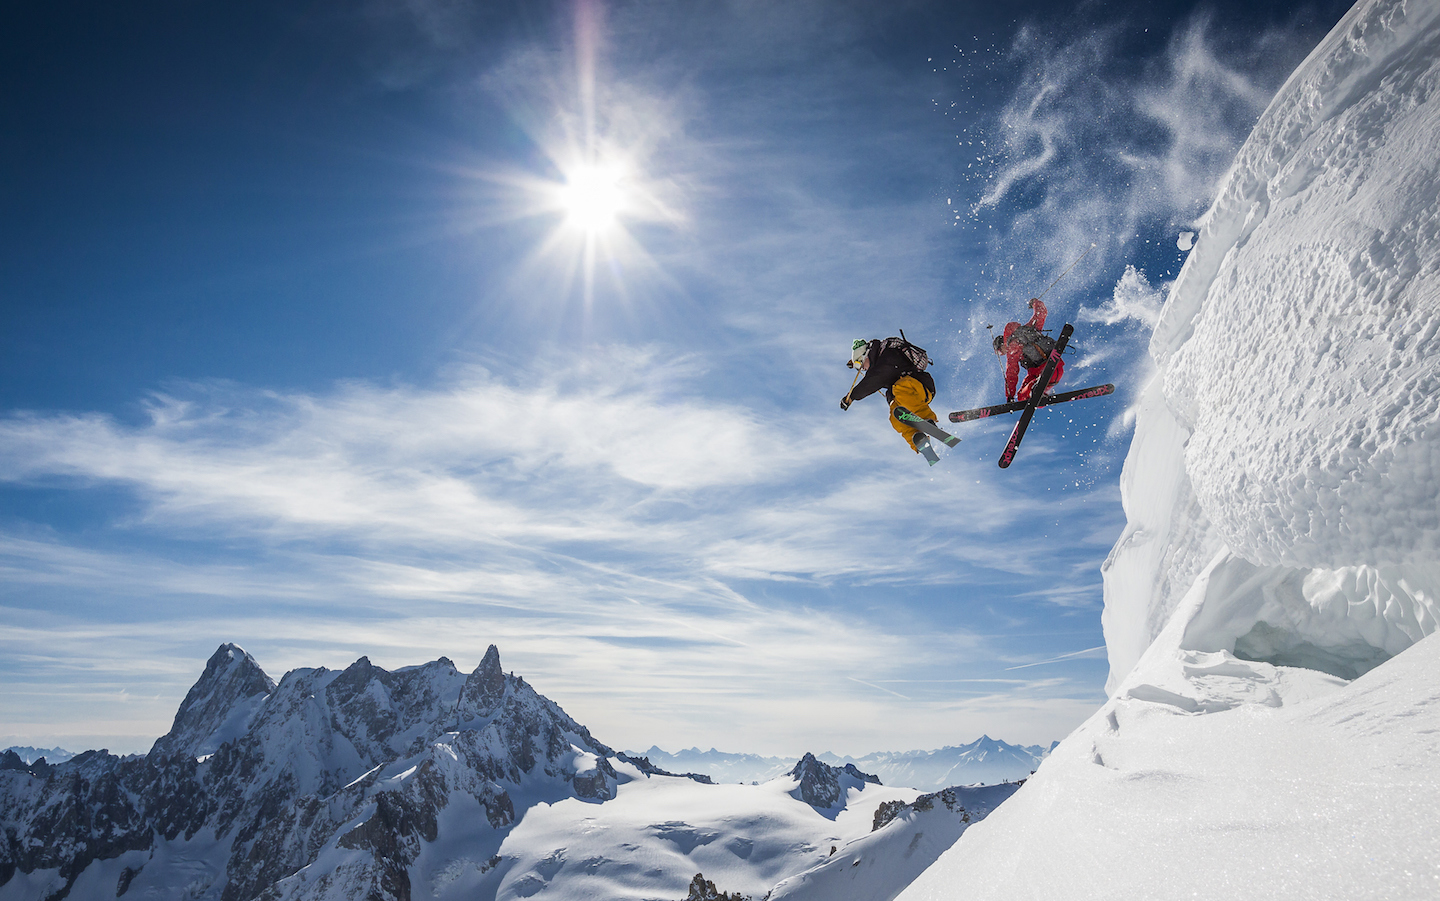 Jumping-Legends-with-Candide-Thovex-_-Guerlain-Chicherit-by-Tristan-Shu-Downloaded-from-500px